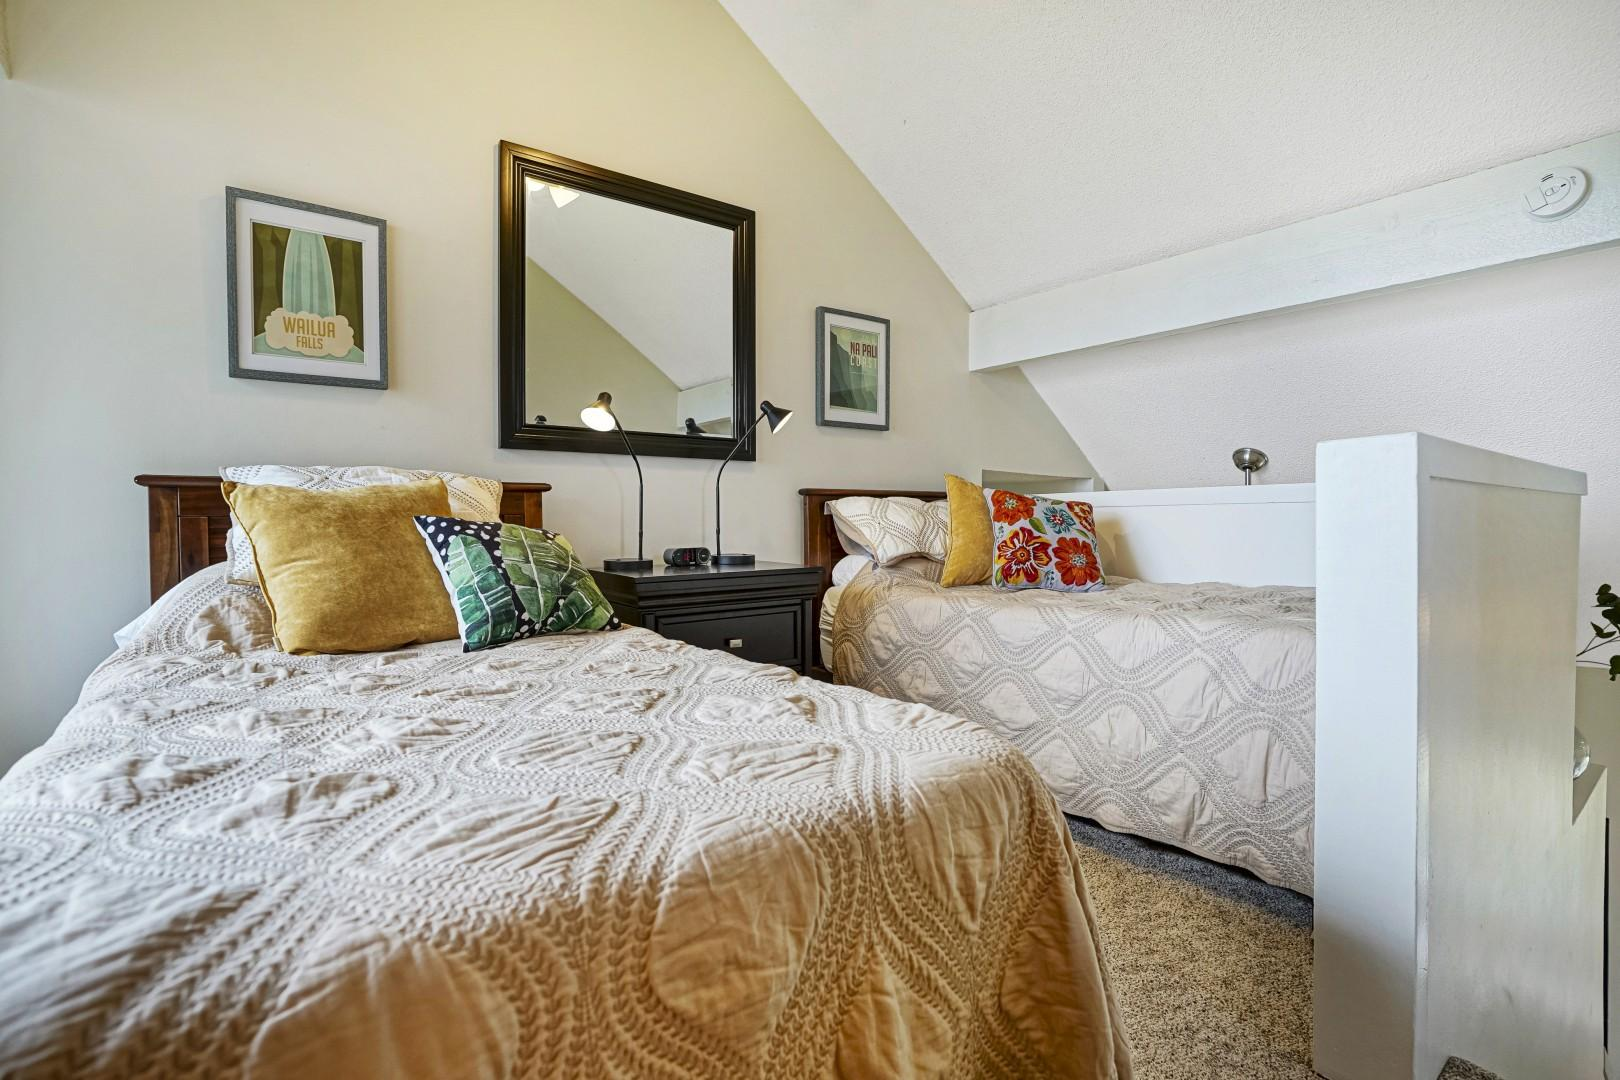 The loft-style second bedroom